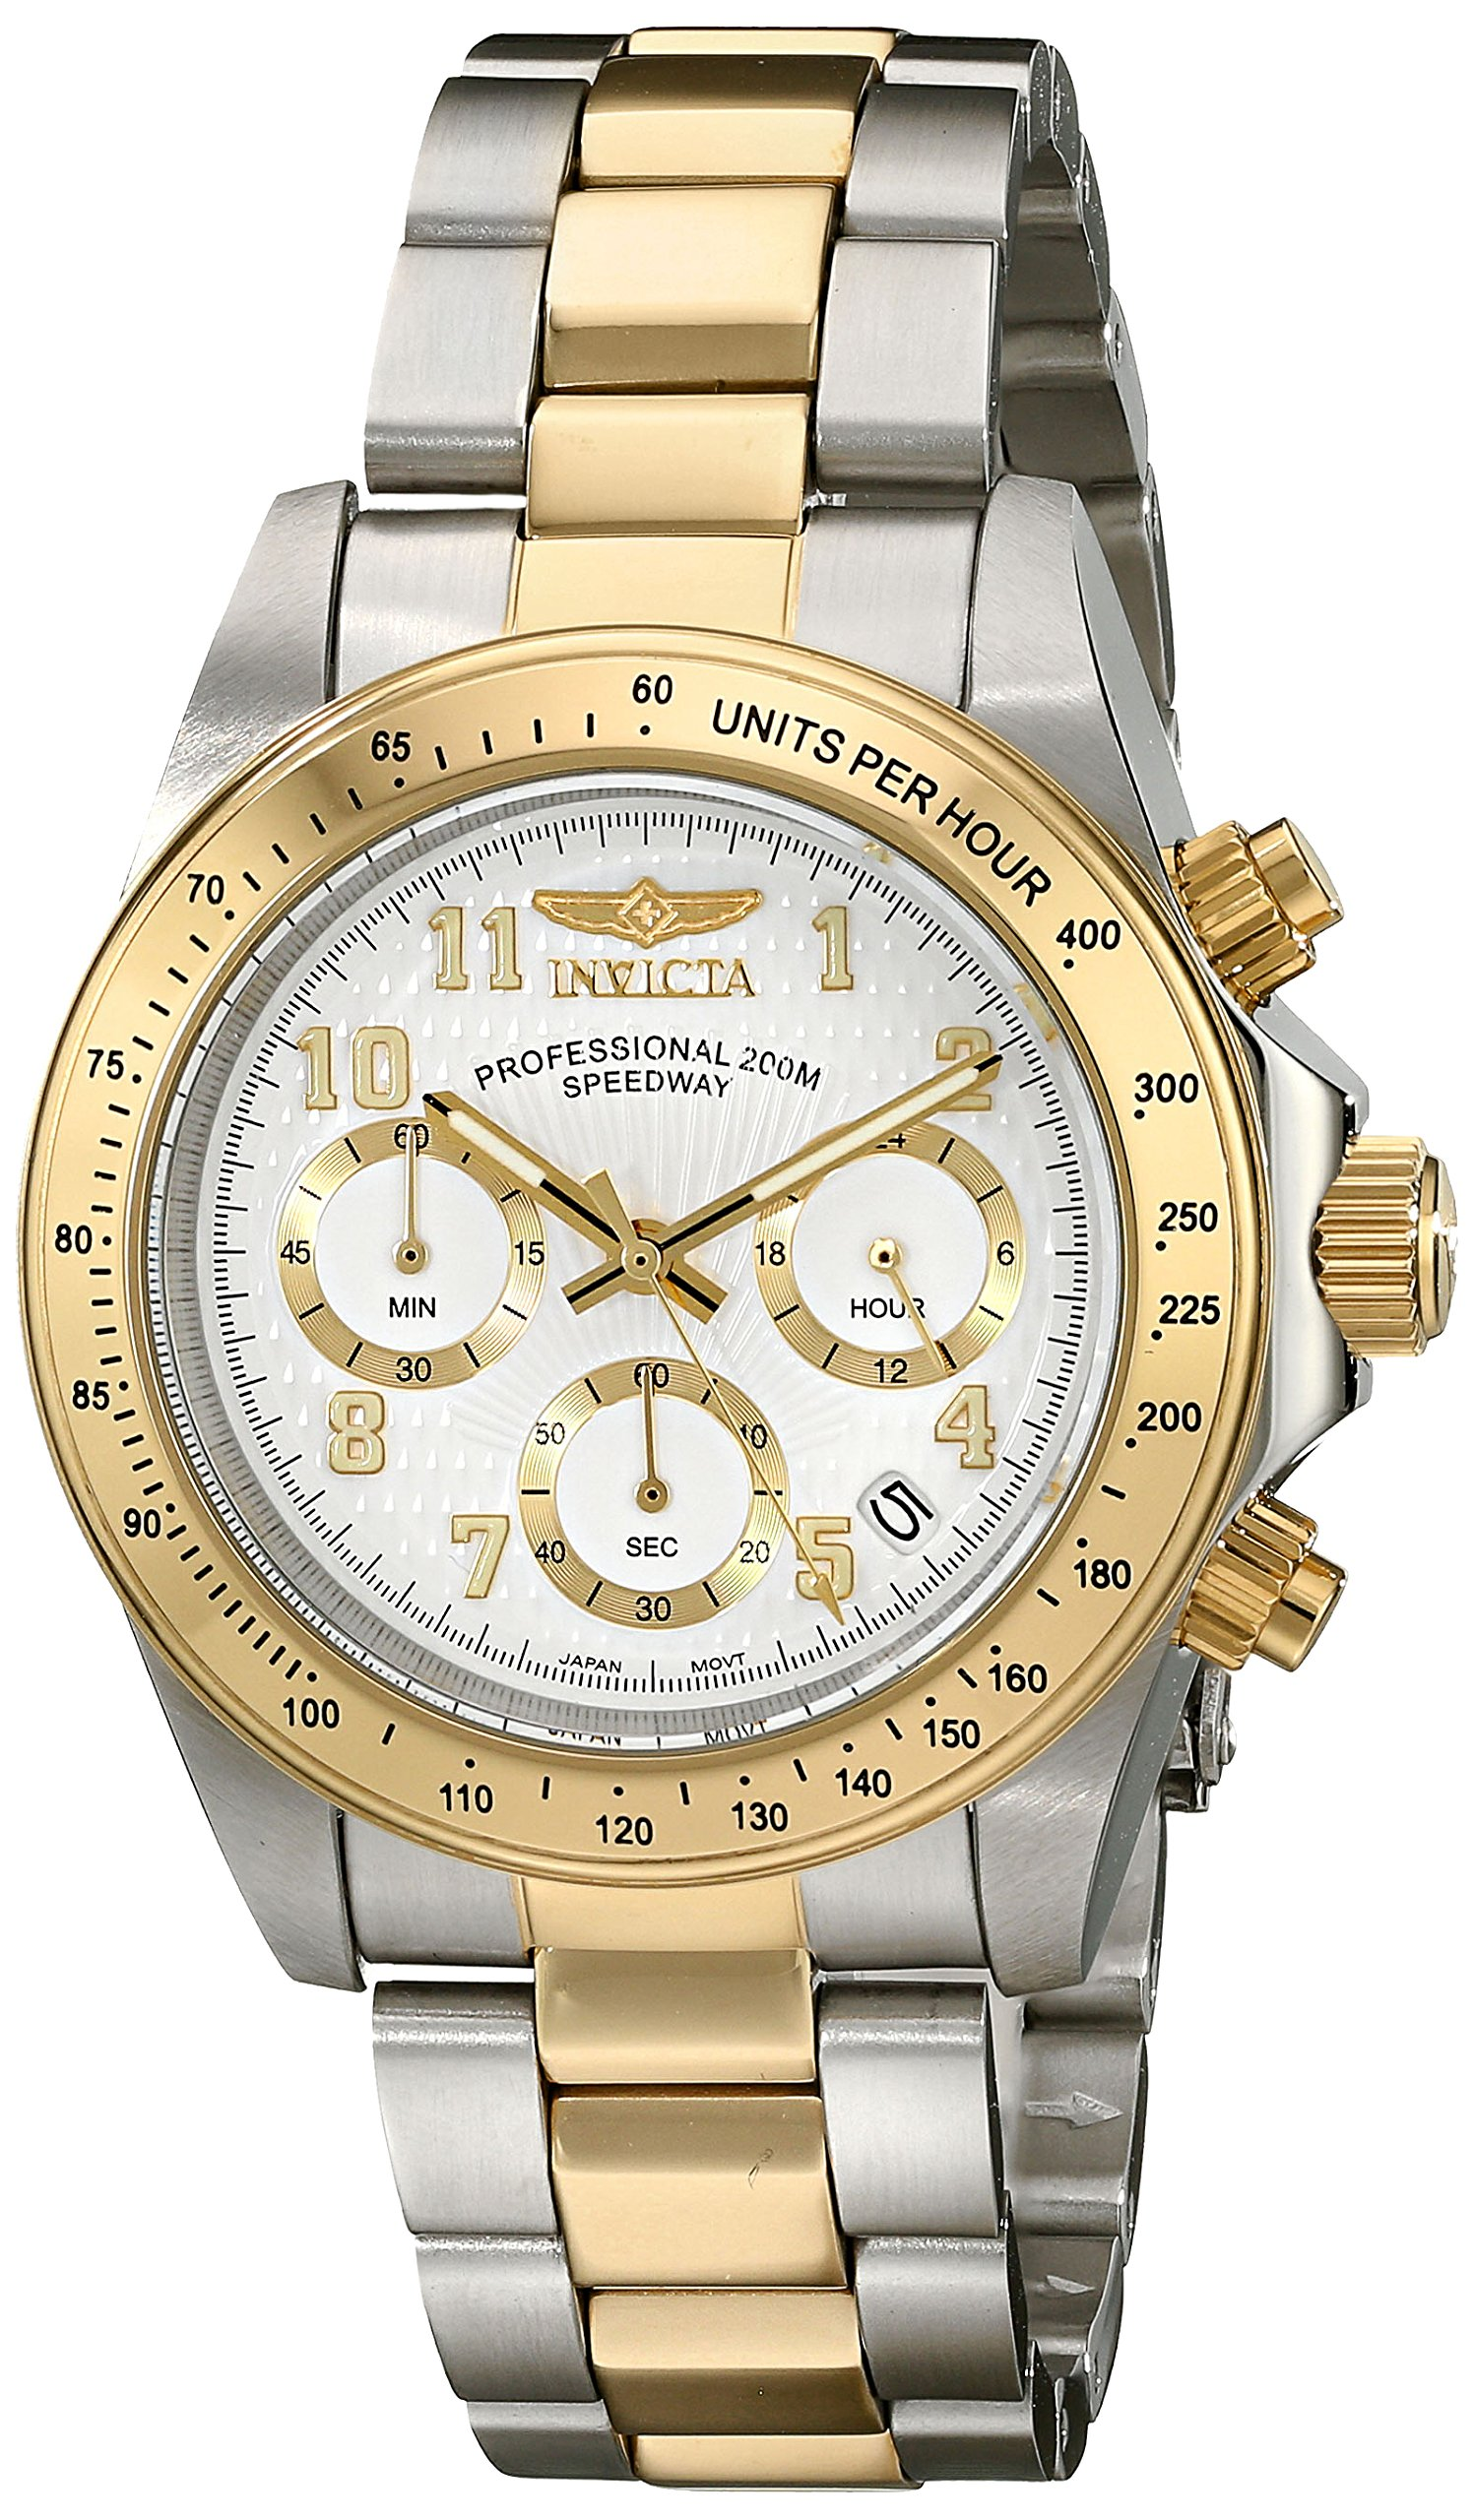 Invicta Men's 17026 Speedway Analog Display Japanese Quartz Two Tone Watch